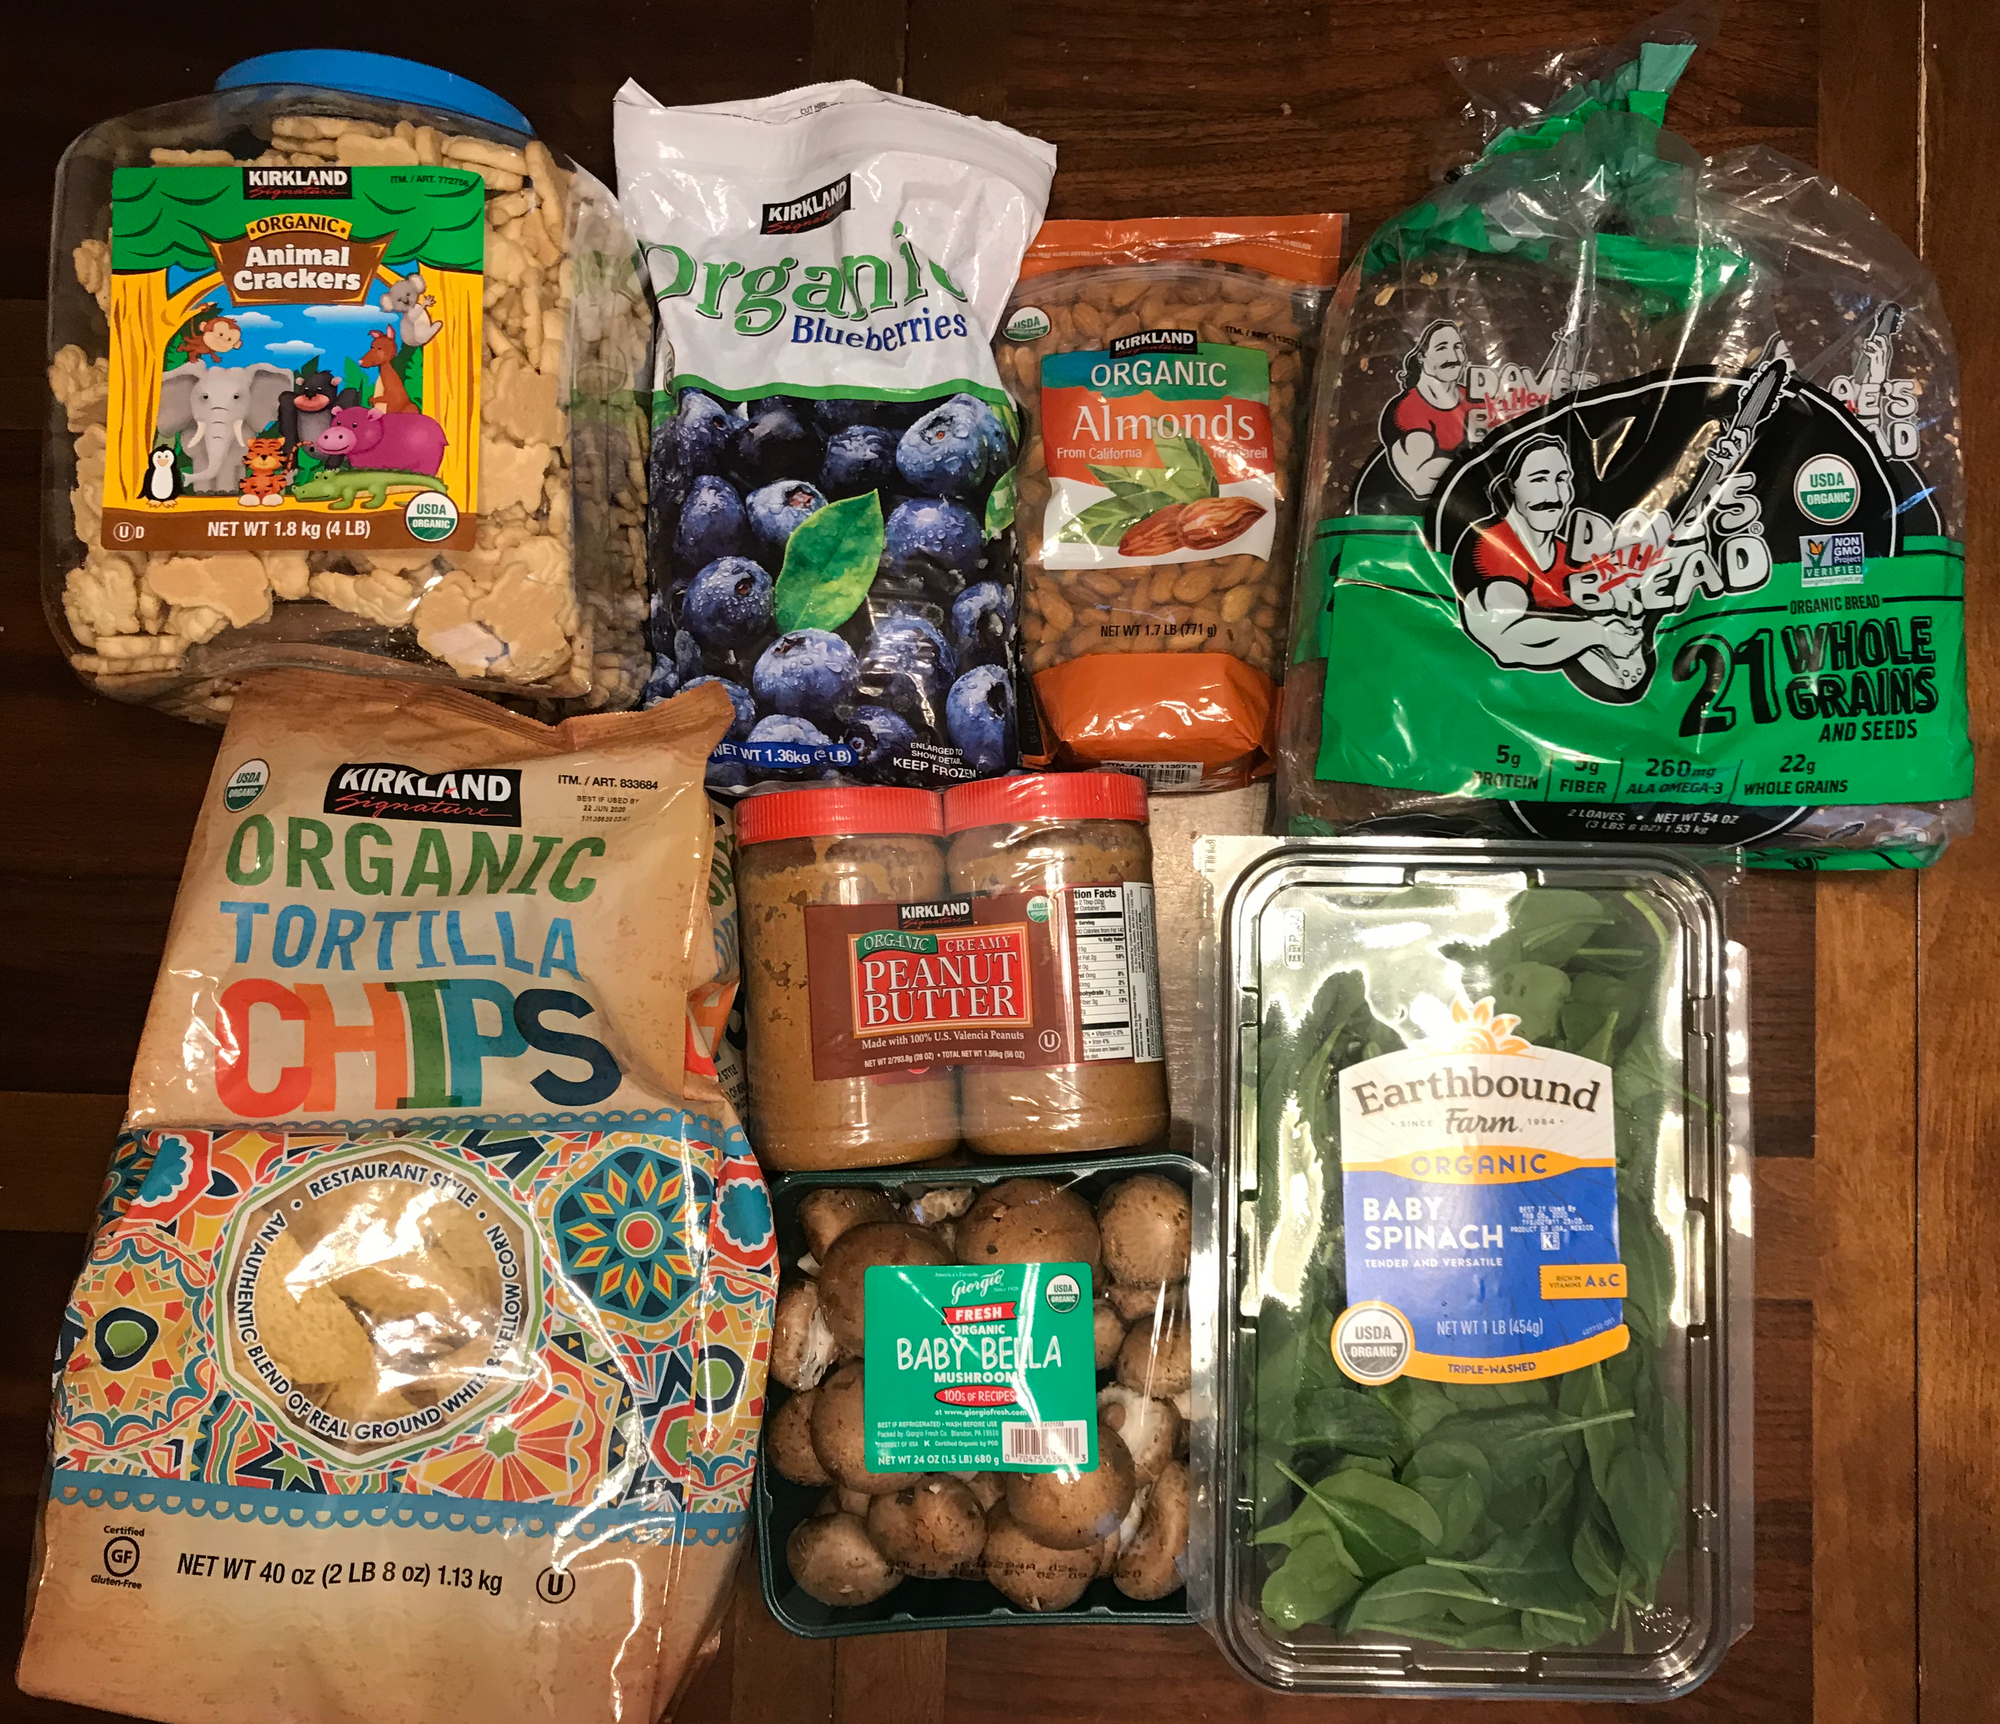 My Costco Grocery Haul for February